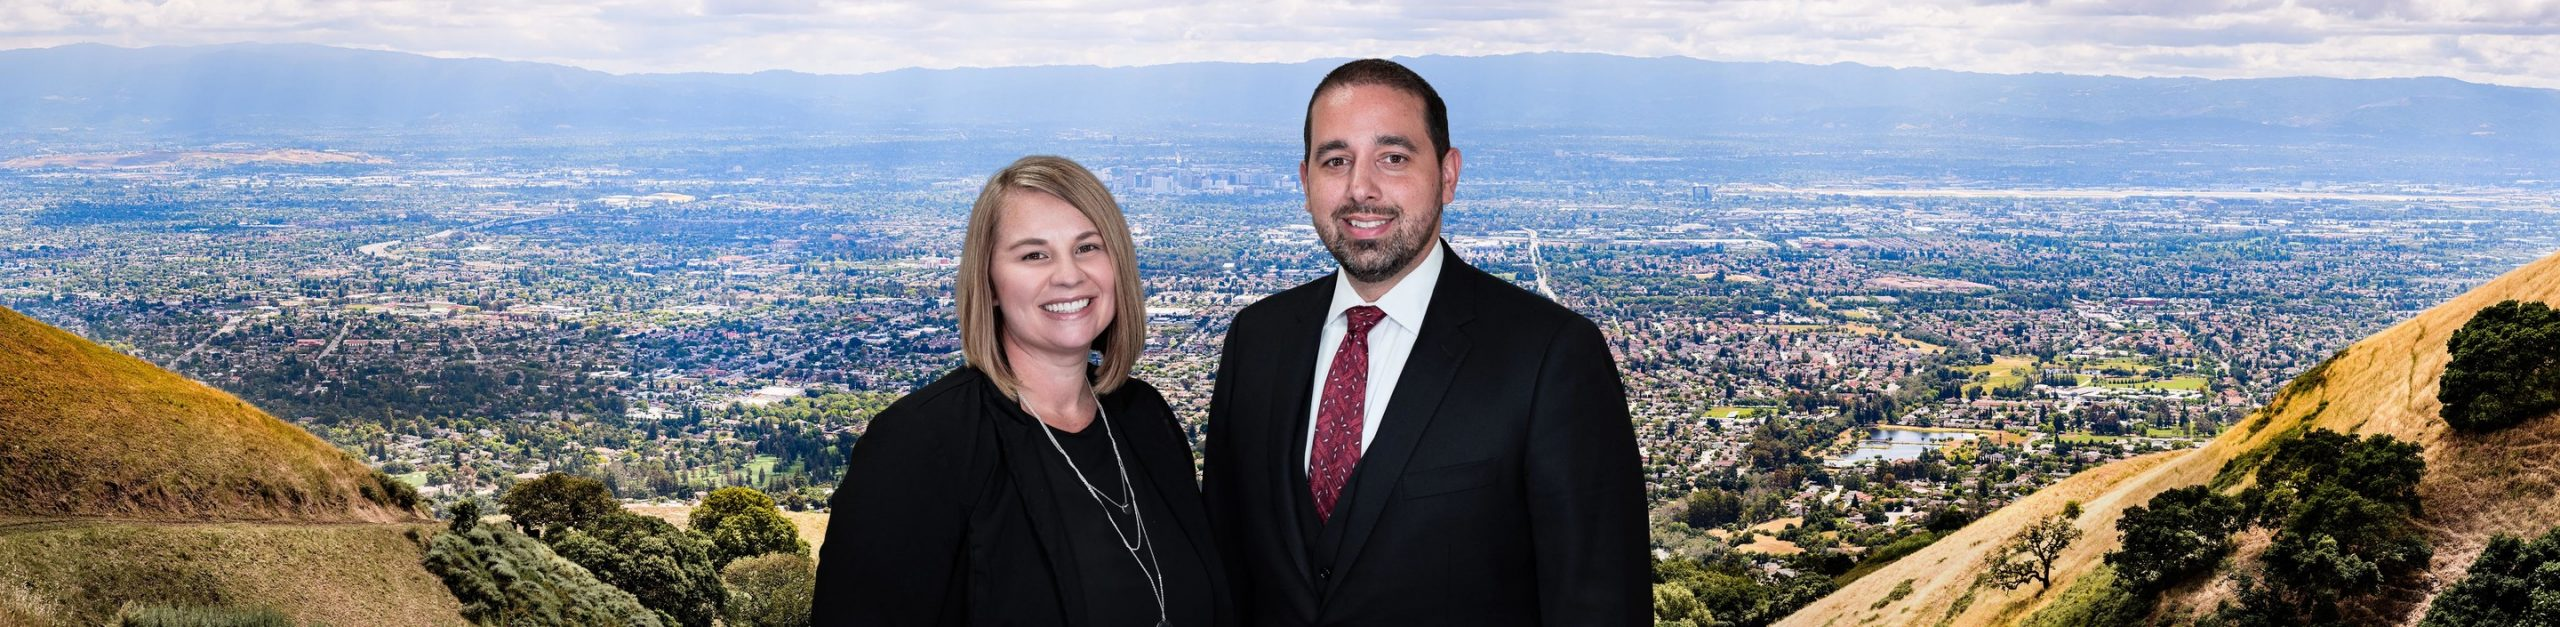 Maggie LaBranch-Gonzales and Justin Kennedy in front of Silicon Valley